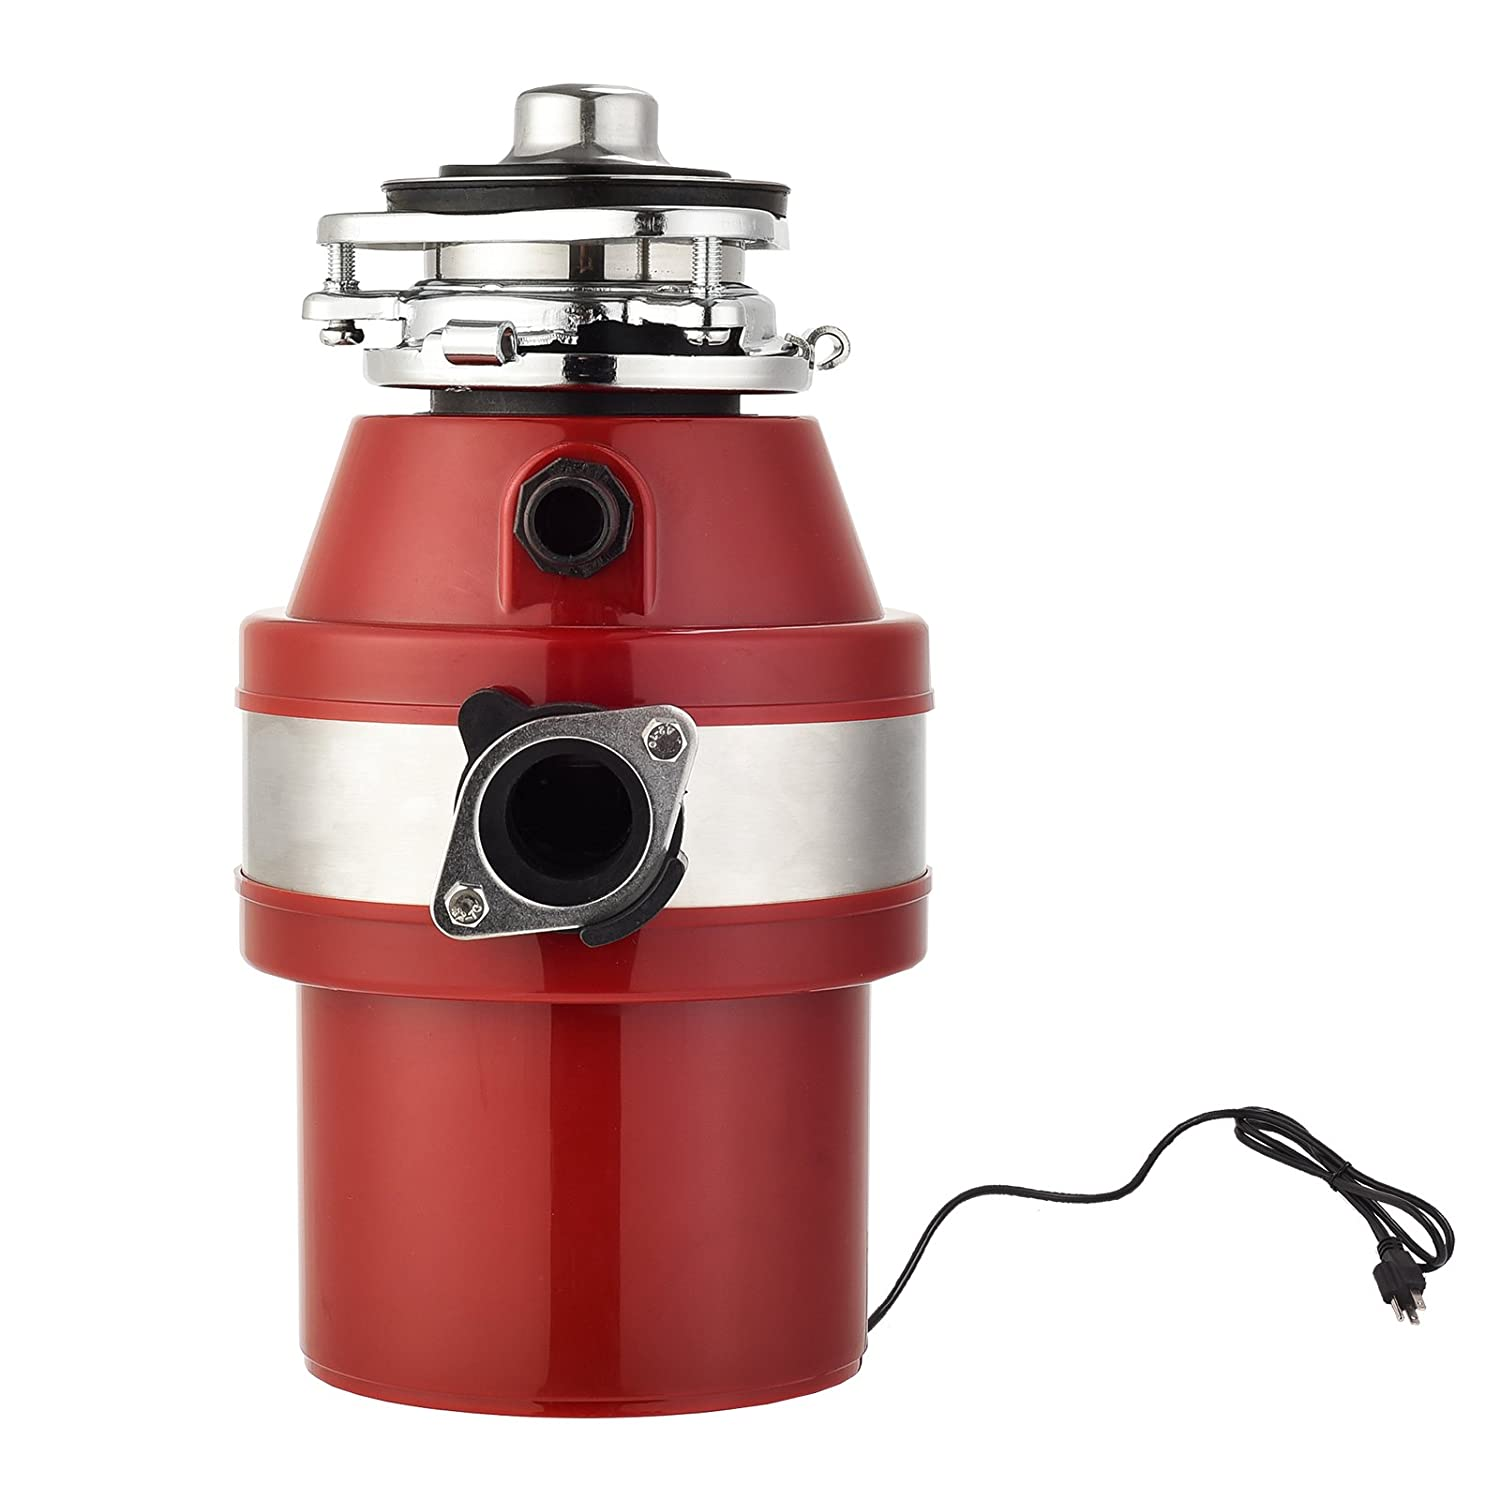 KUPPET Garbage Disposal, Garbage Disposal with1 HP Household Food Waste Garbage Disposal Continuous Feed with Power Cord 3 Level of Grinding 2600 RPM (Red)